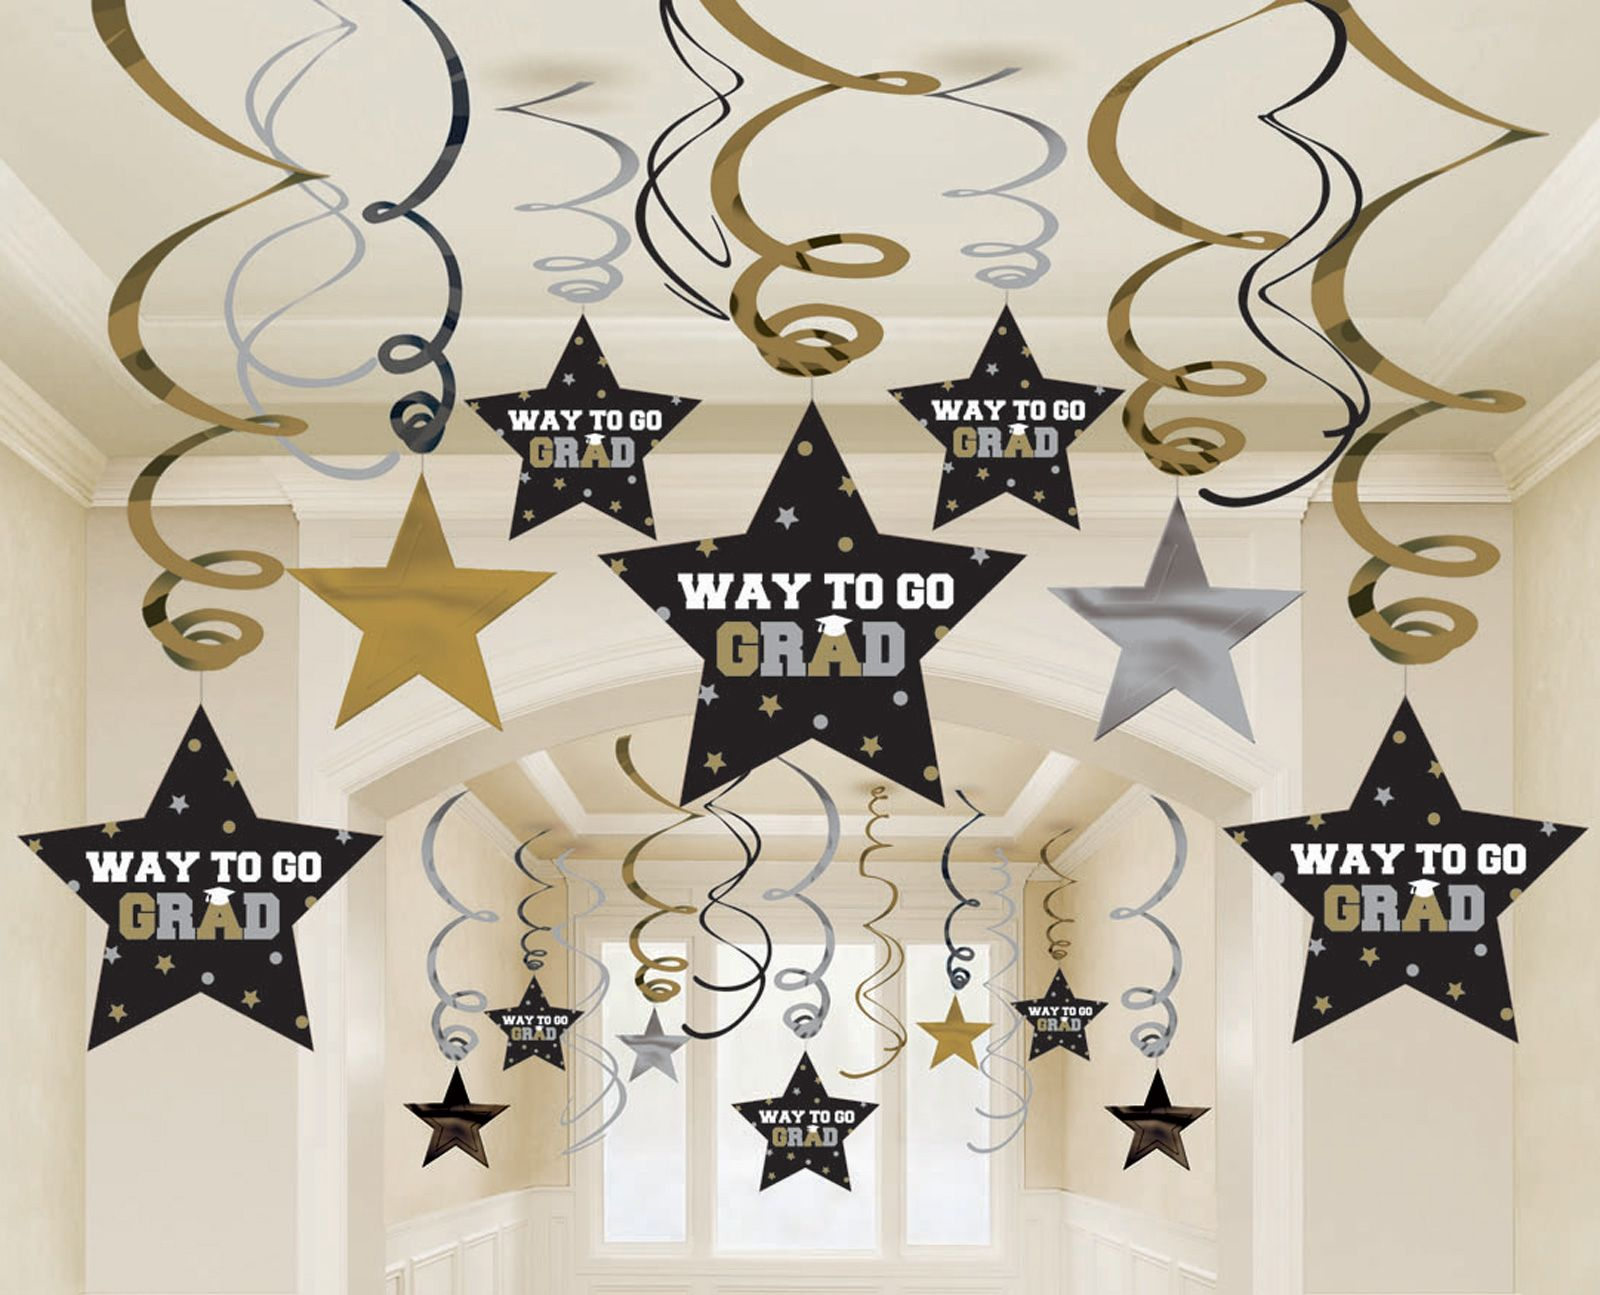 Home Graduation Star Swirl Decorations Black Silver Gold